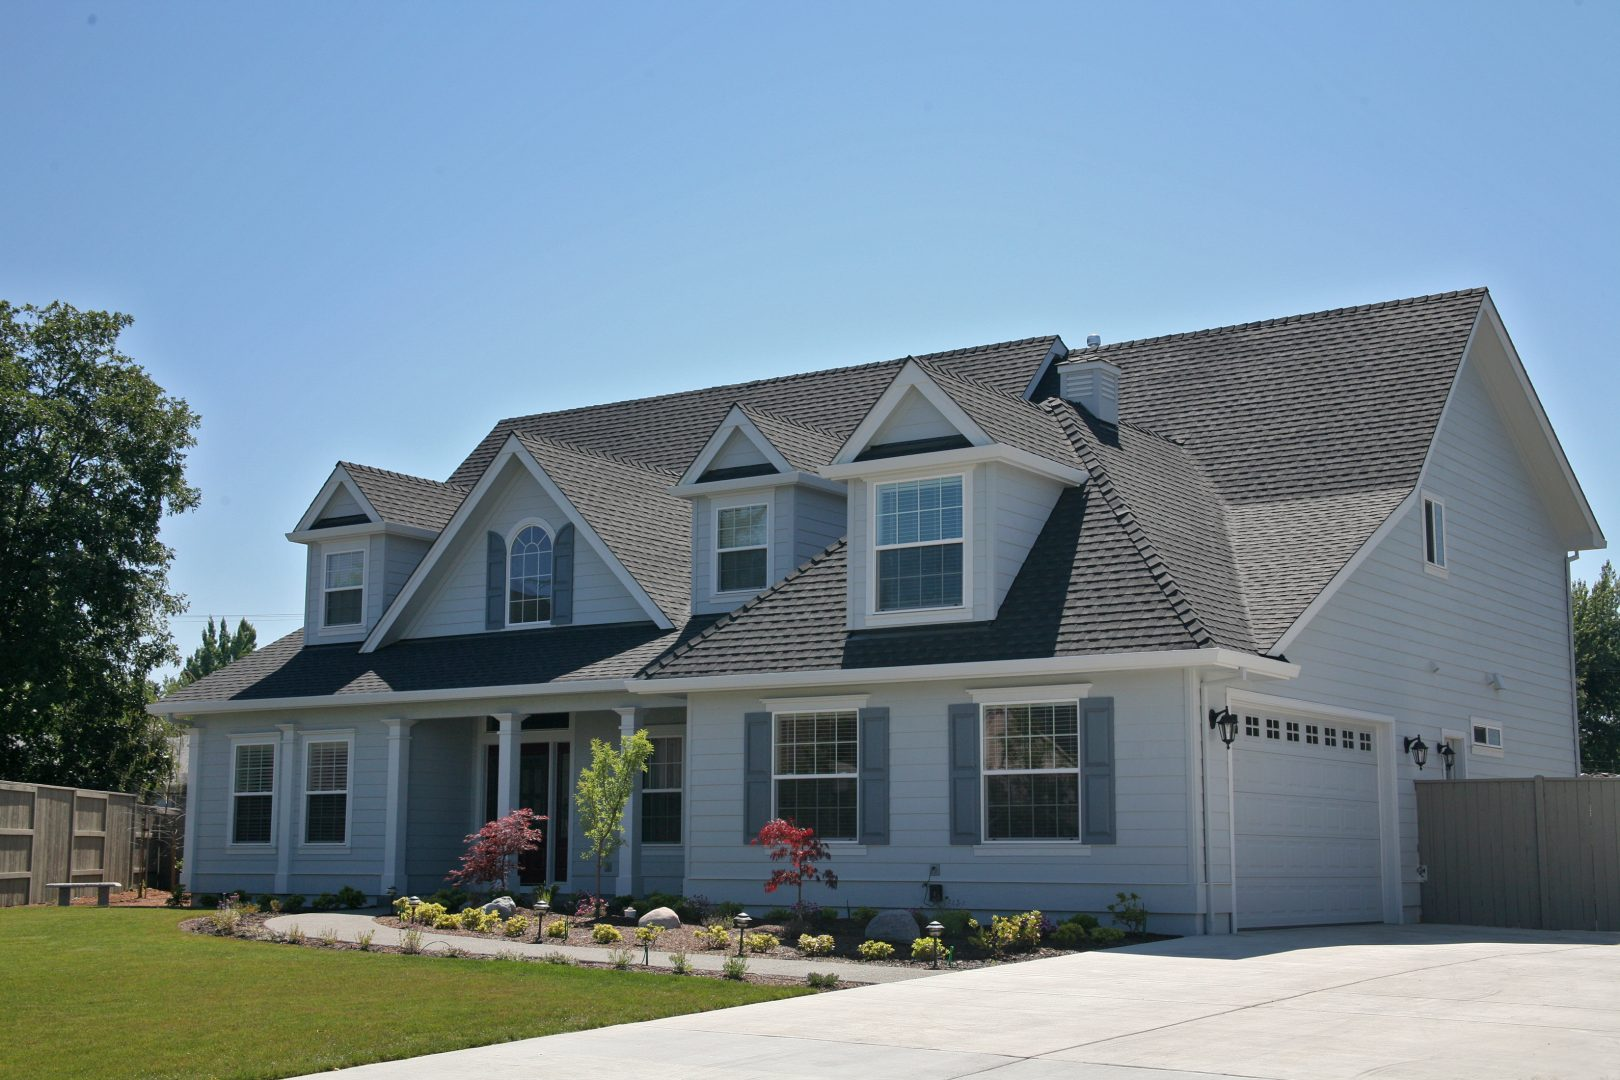 roofing-contractor-project-finished-in-central-pa